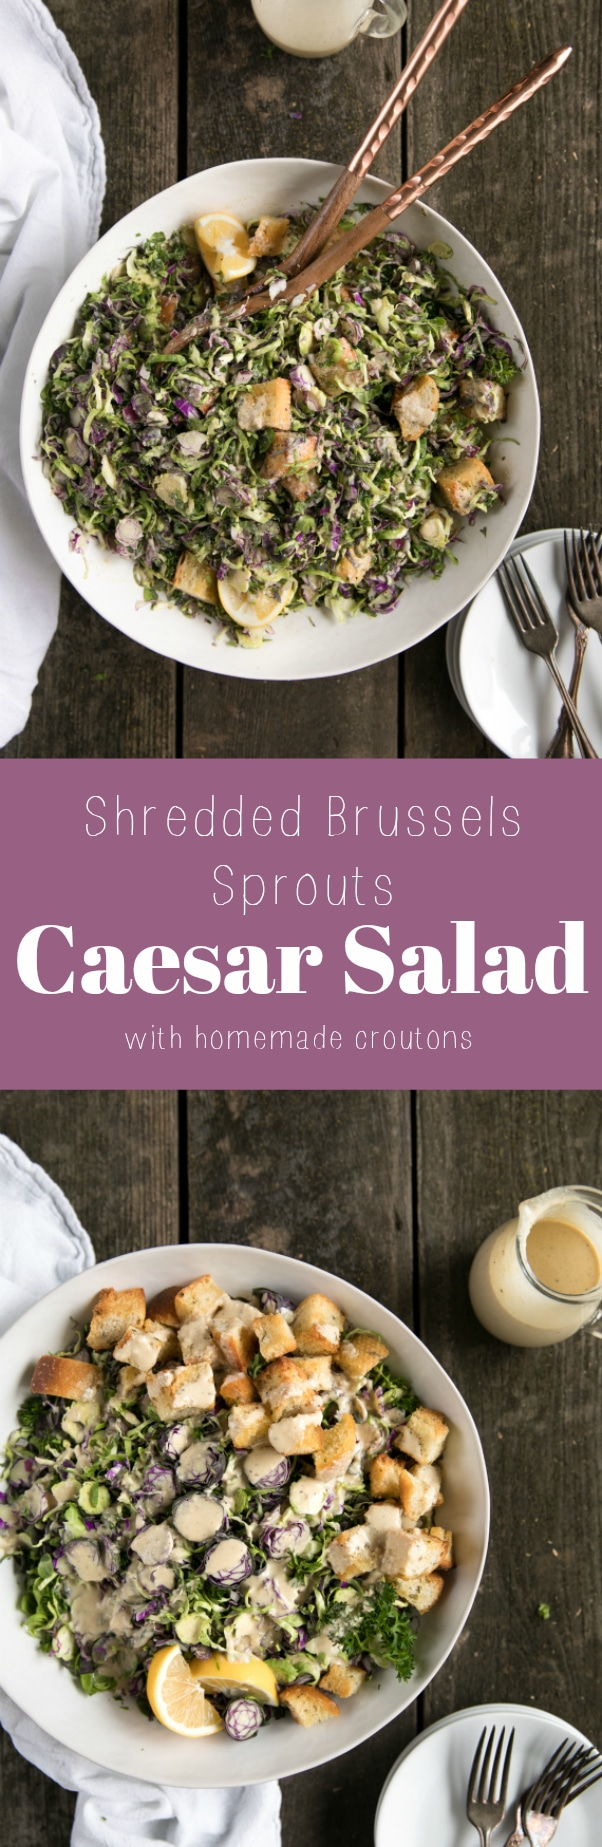 Shredded Brussels Sprouts Caesar Salad with Homemade Croutons #caesarsalad #homemade #croutons #brusselssprouts #salad #easydinner via @theforkedspoon